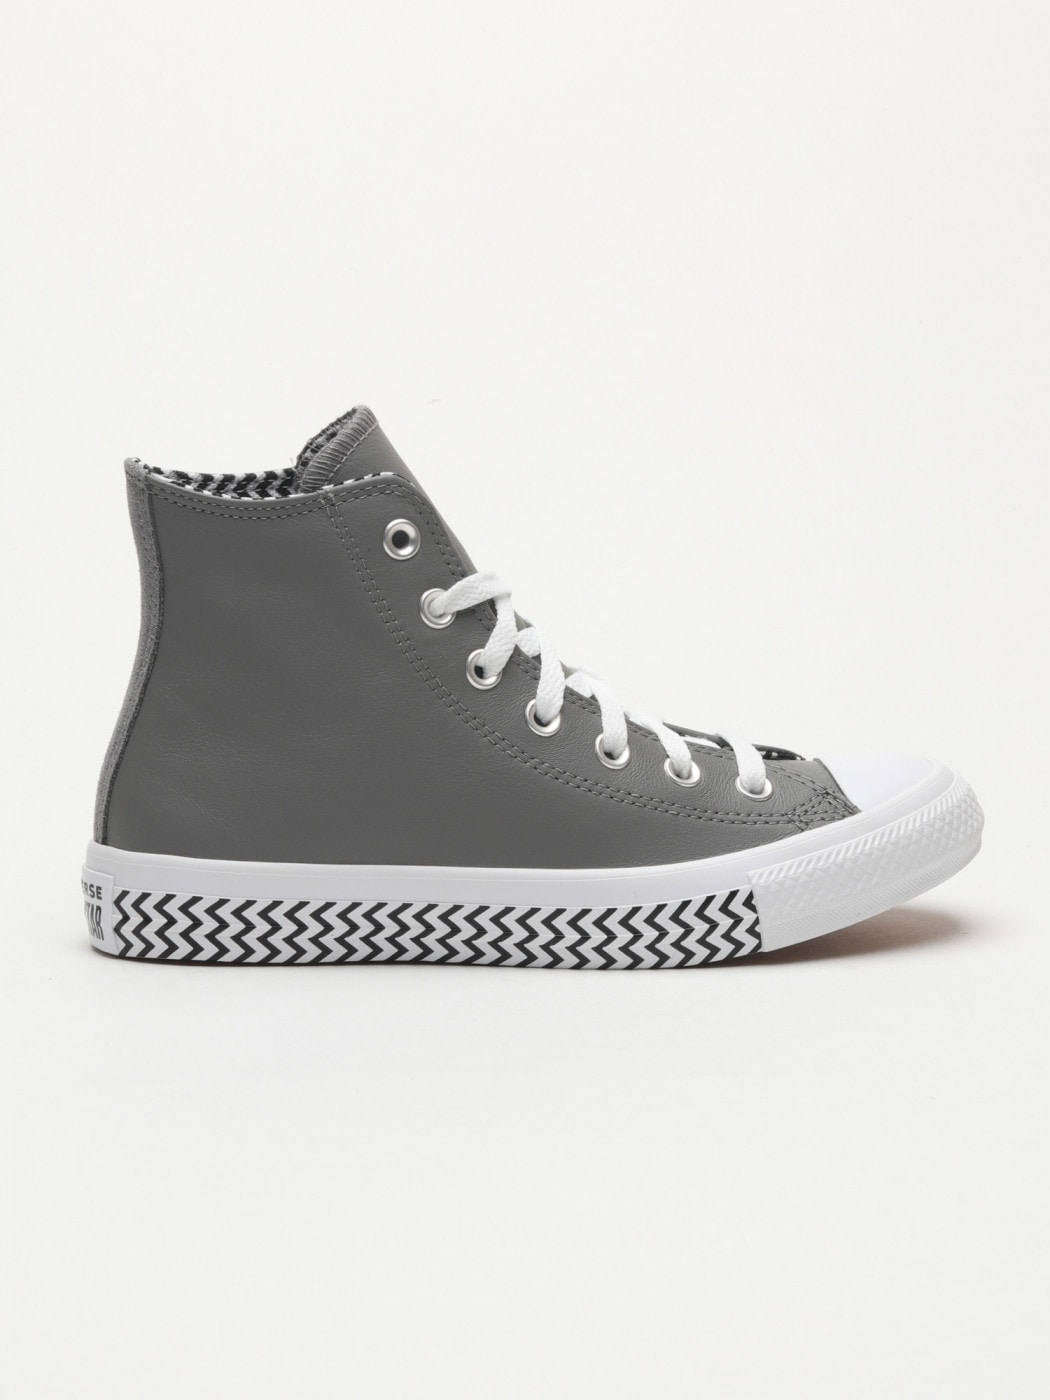 Converse Chuck Taylor All Star Vltg Leather Shoes